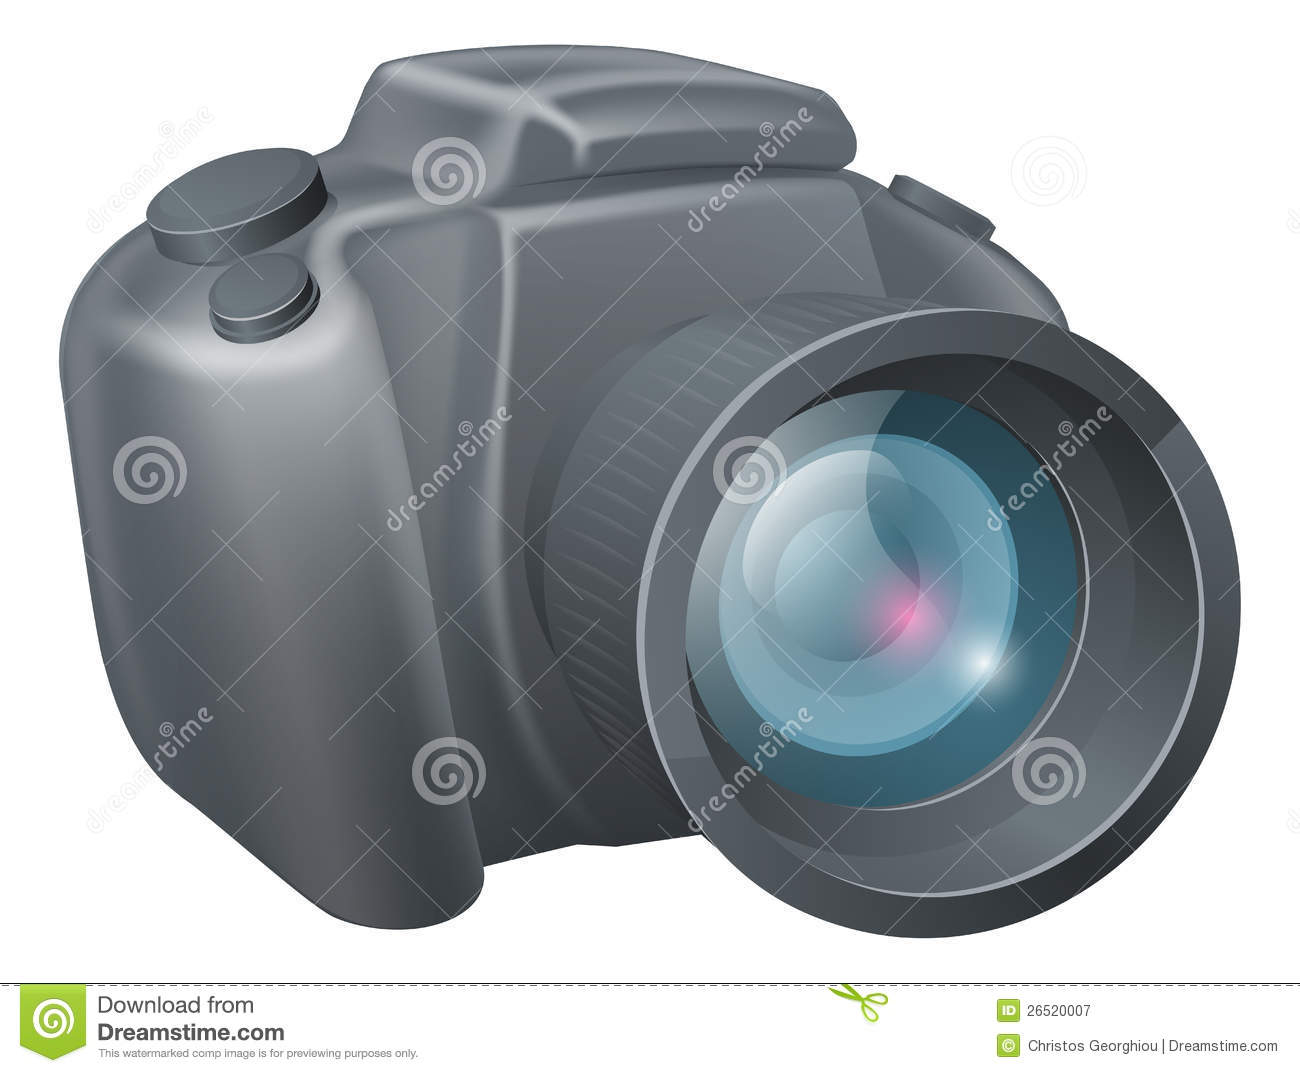 Free Clipart Camera Photography